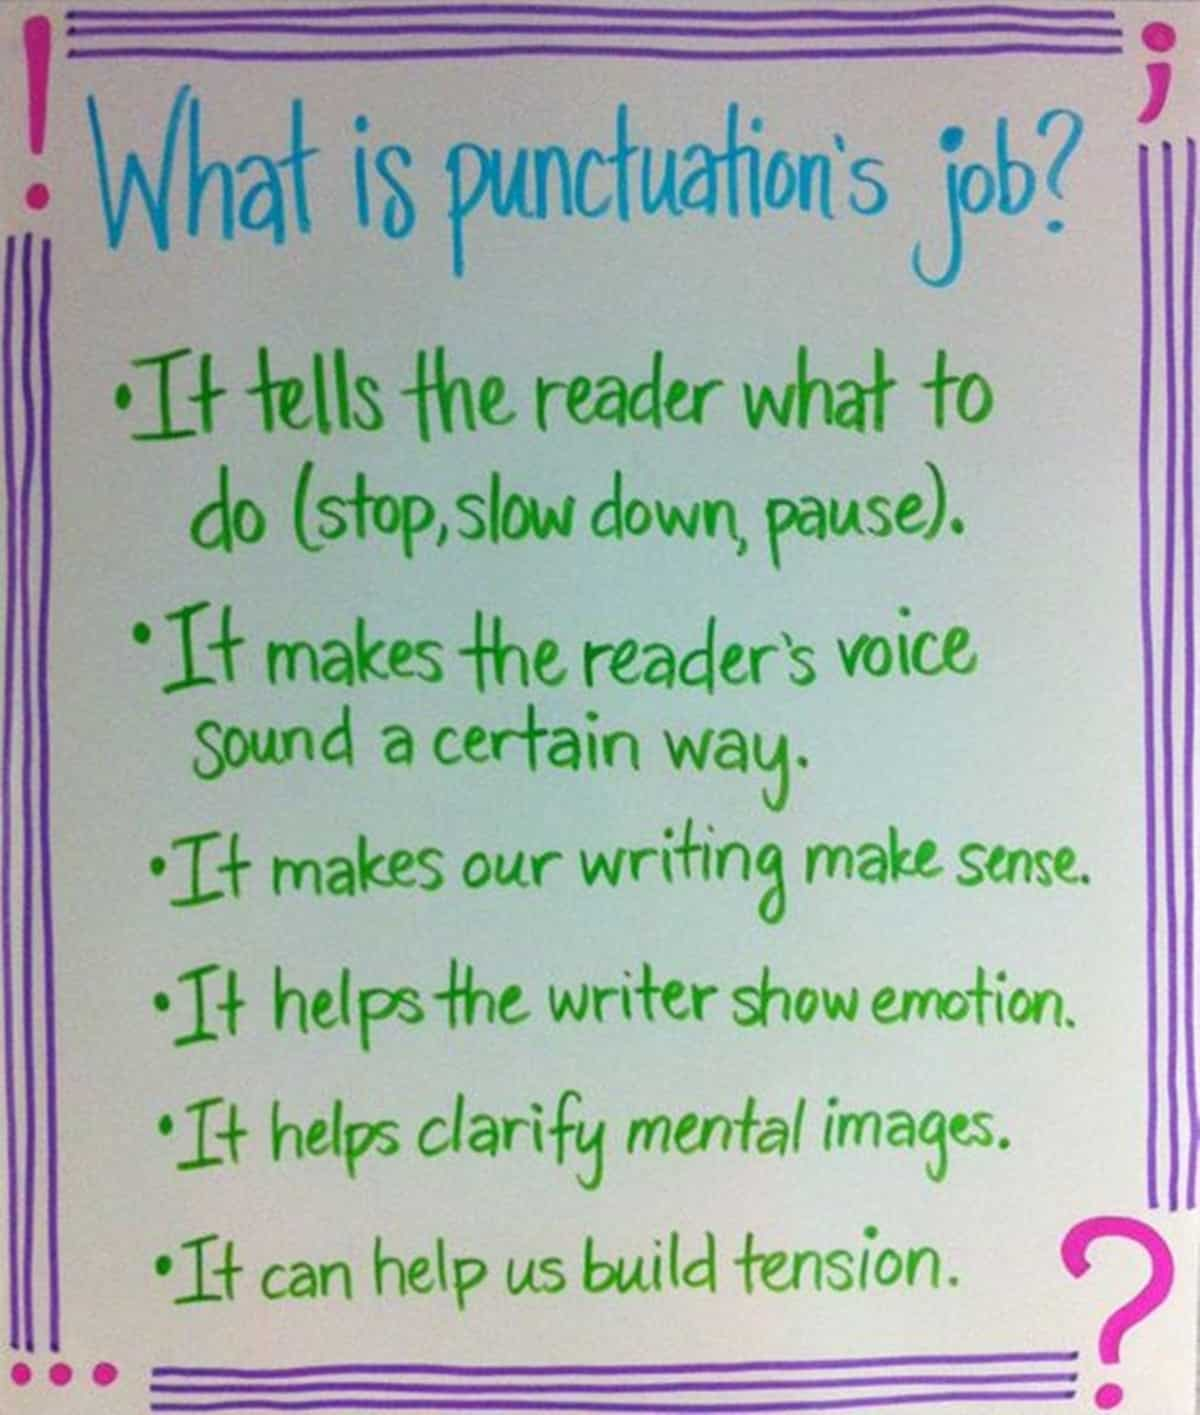 what is Punctuation's job?